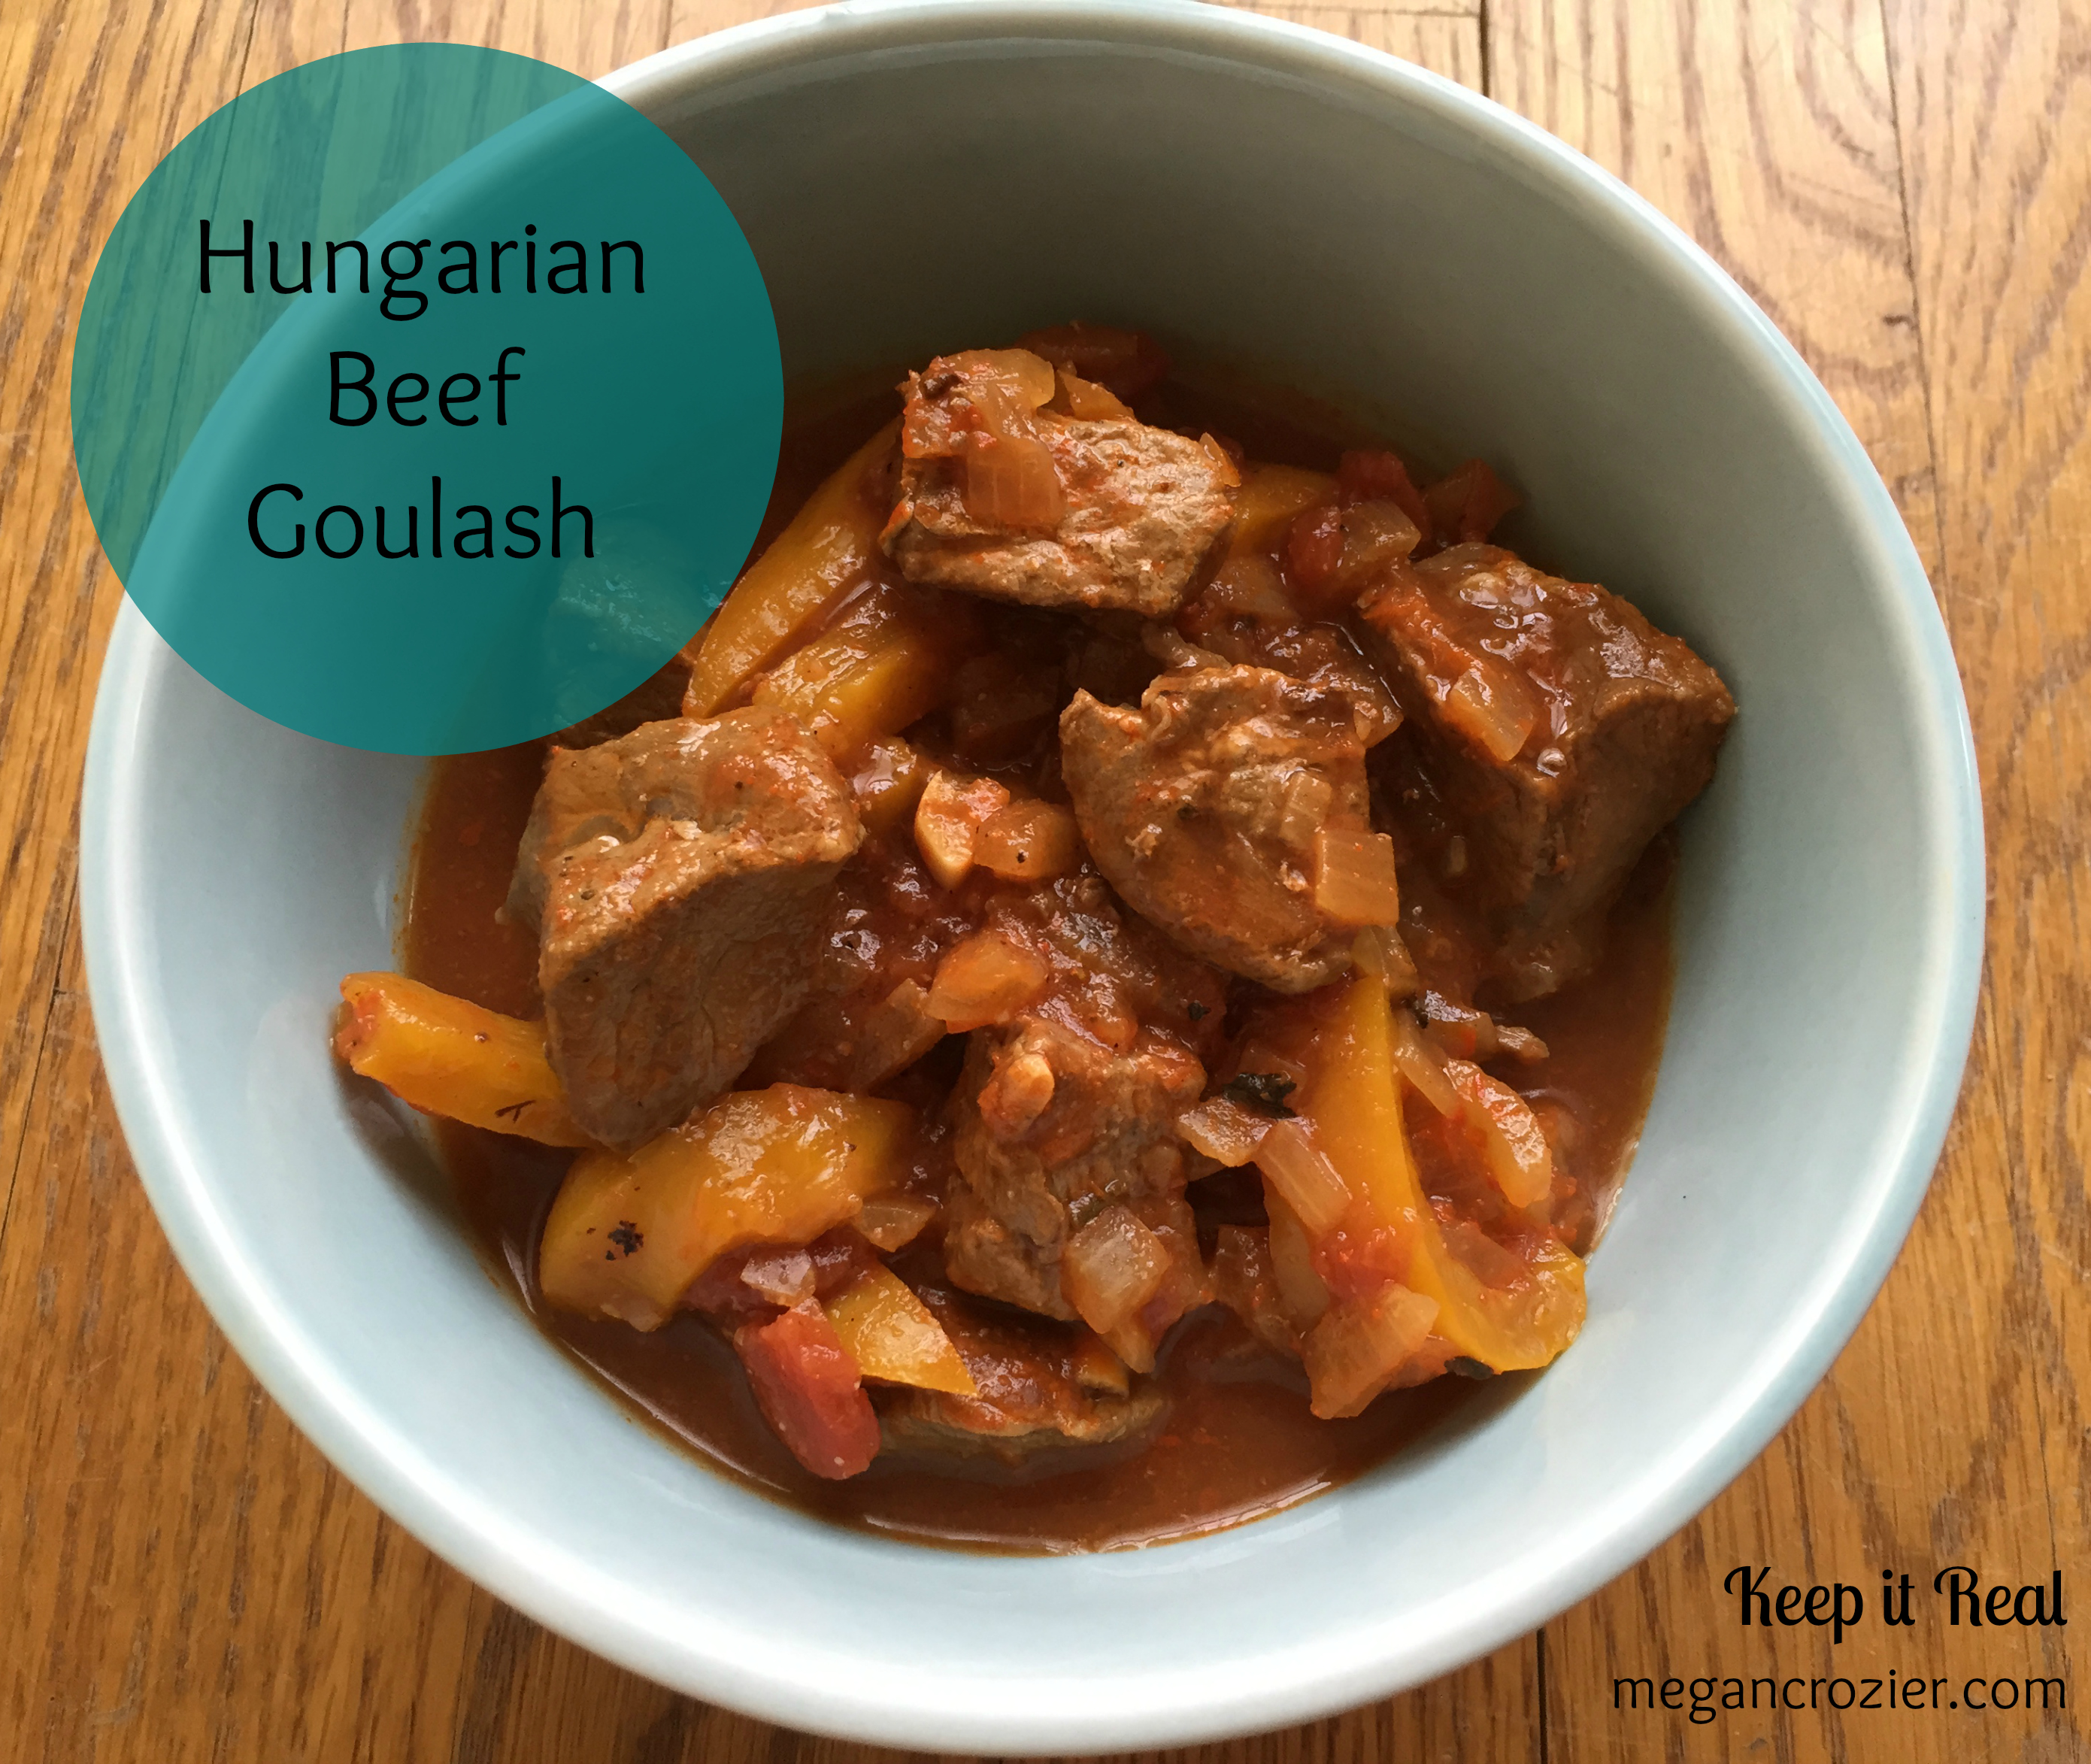 Hungarian Beef Goulash - Keep it Real